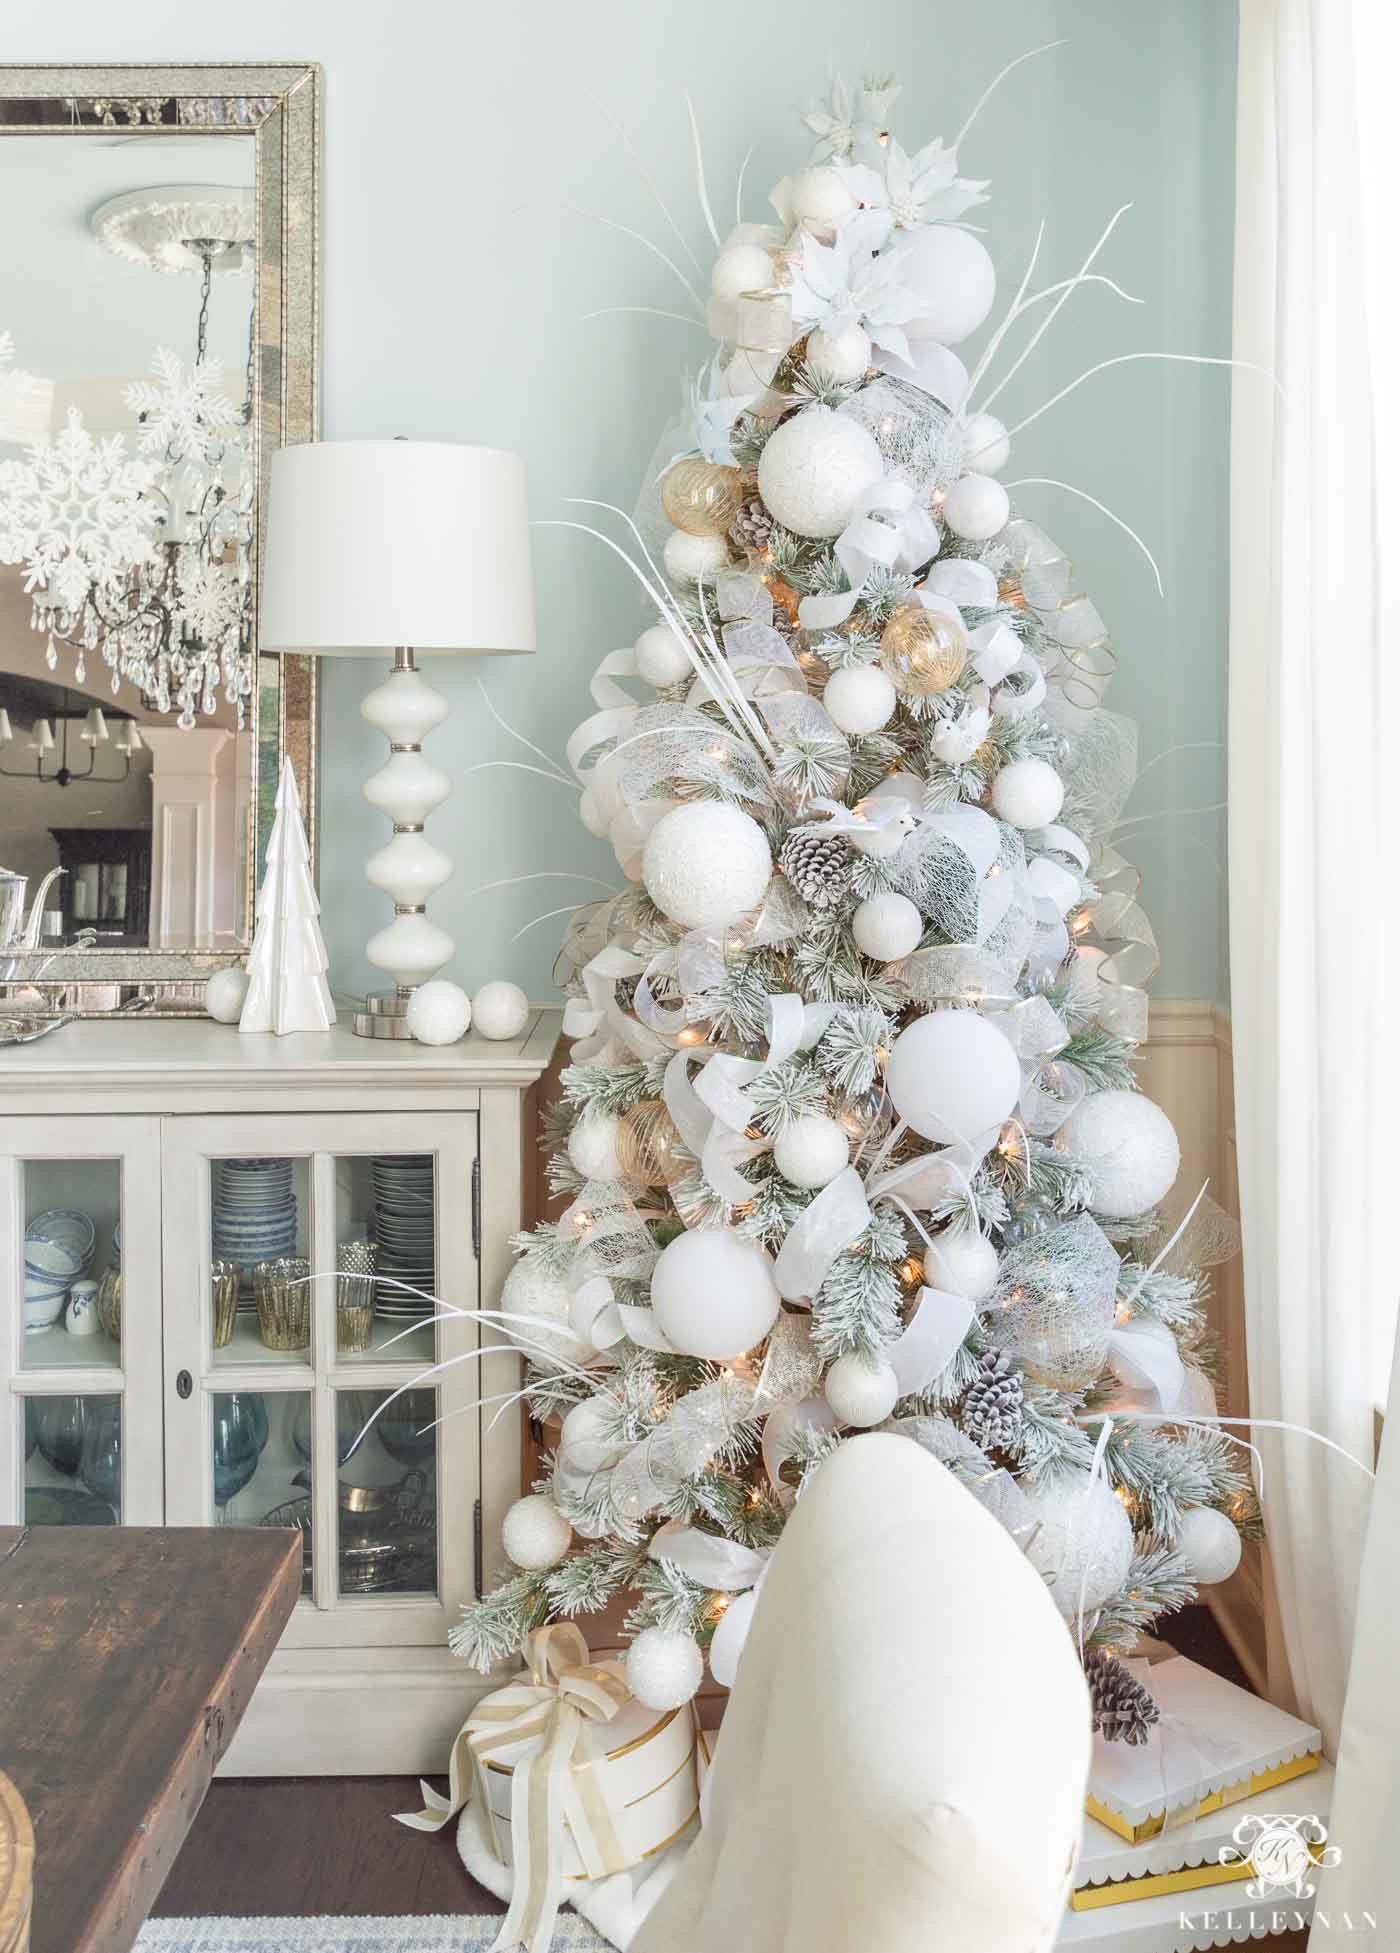 White and Pale Blue Christmas Color Scheme